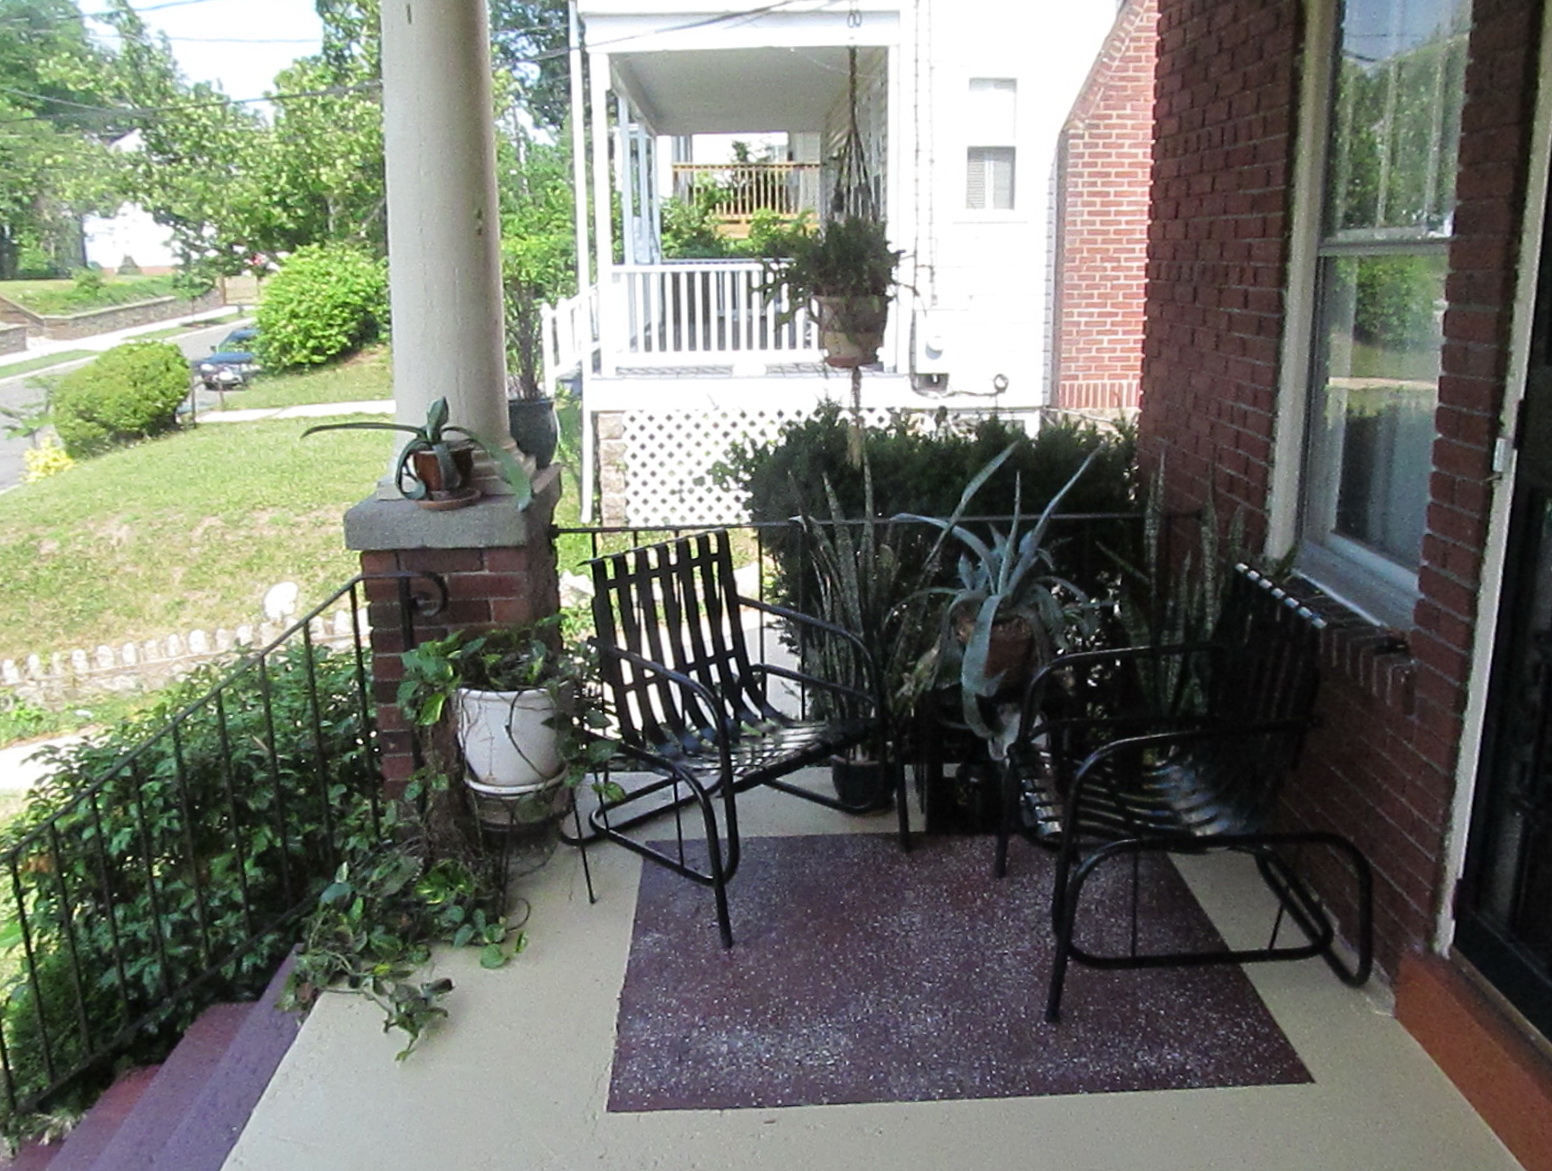 Glidden Porch And Floor 1 Gal Gloss Porch And Floor